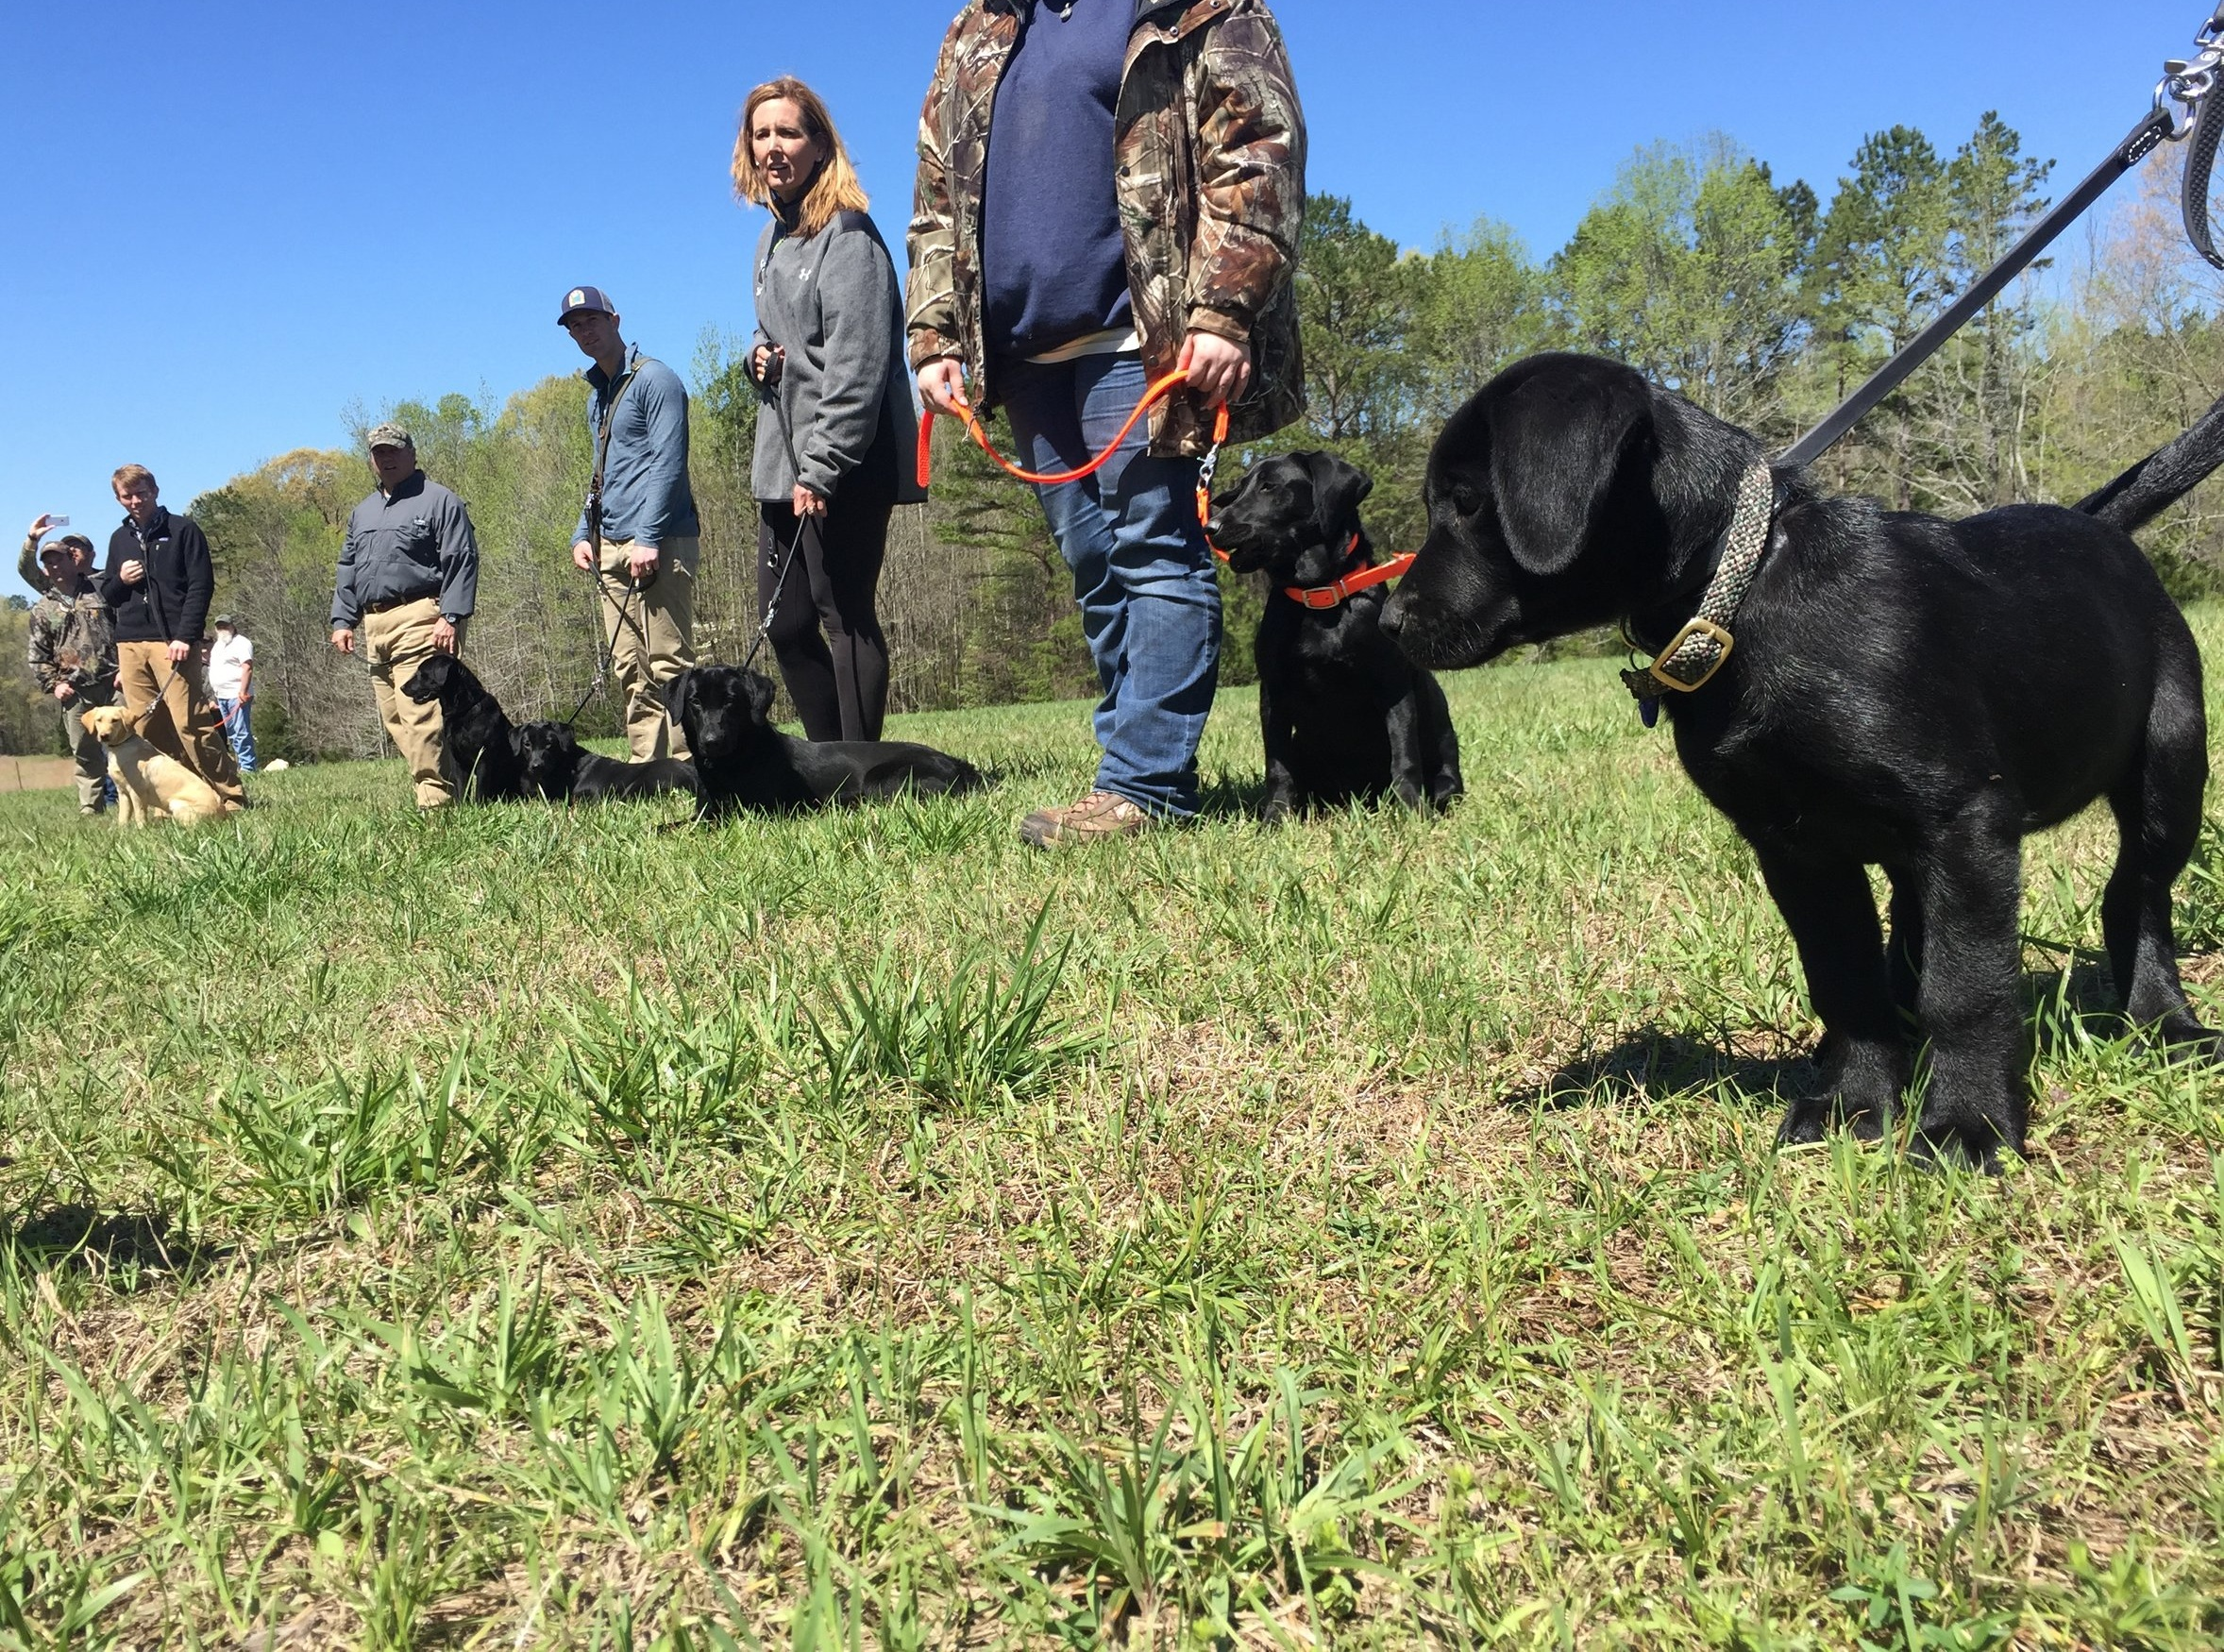 Starting Your Dog the Wildrose Way - Come learn what it takes to train a well-rounded, hunting or adventure partner. Topics include obedience, steadiness, promoting calm behaviors, patience, introduction to birds, memories, doubles, early marks, reading your pup, k-9 demeanor and much more. Bring your pup, all breeds are welcome.